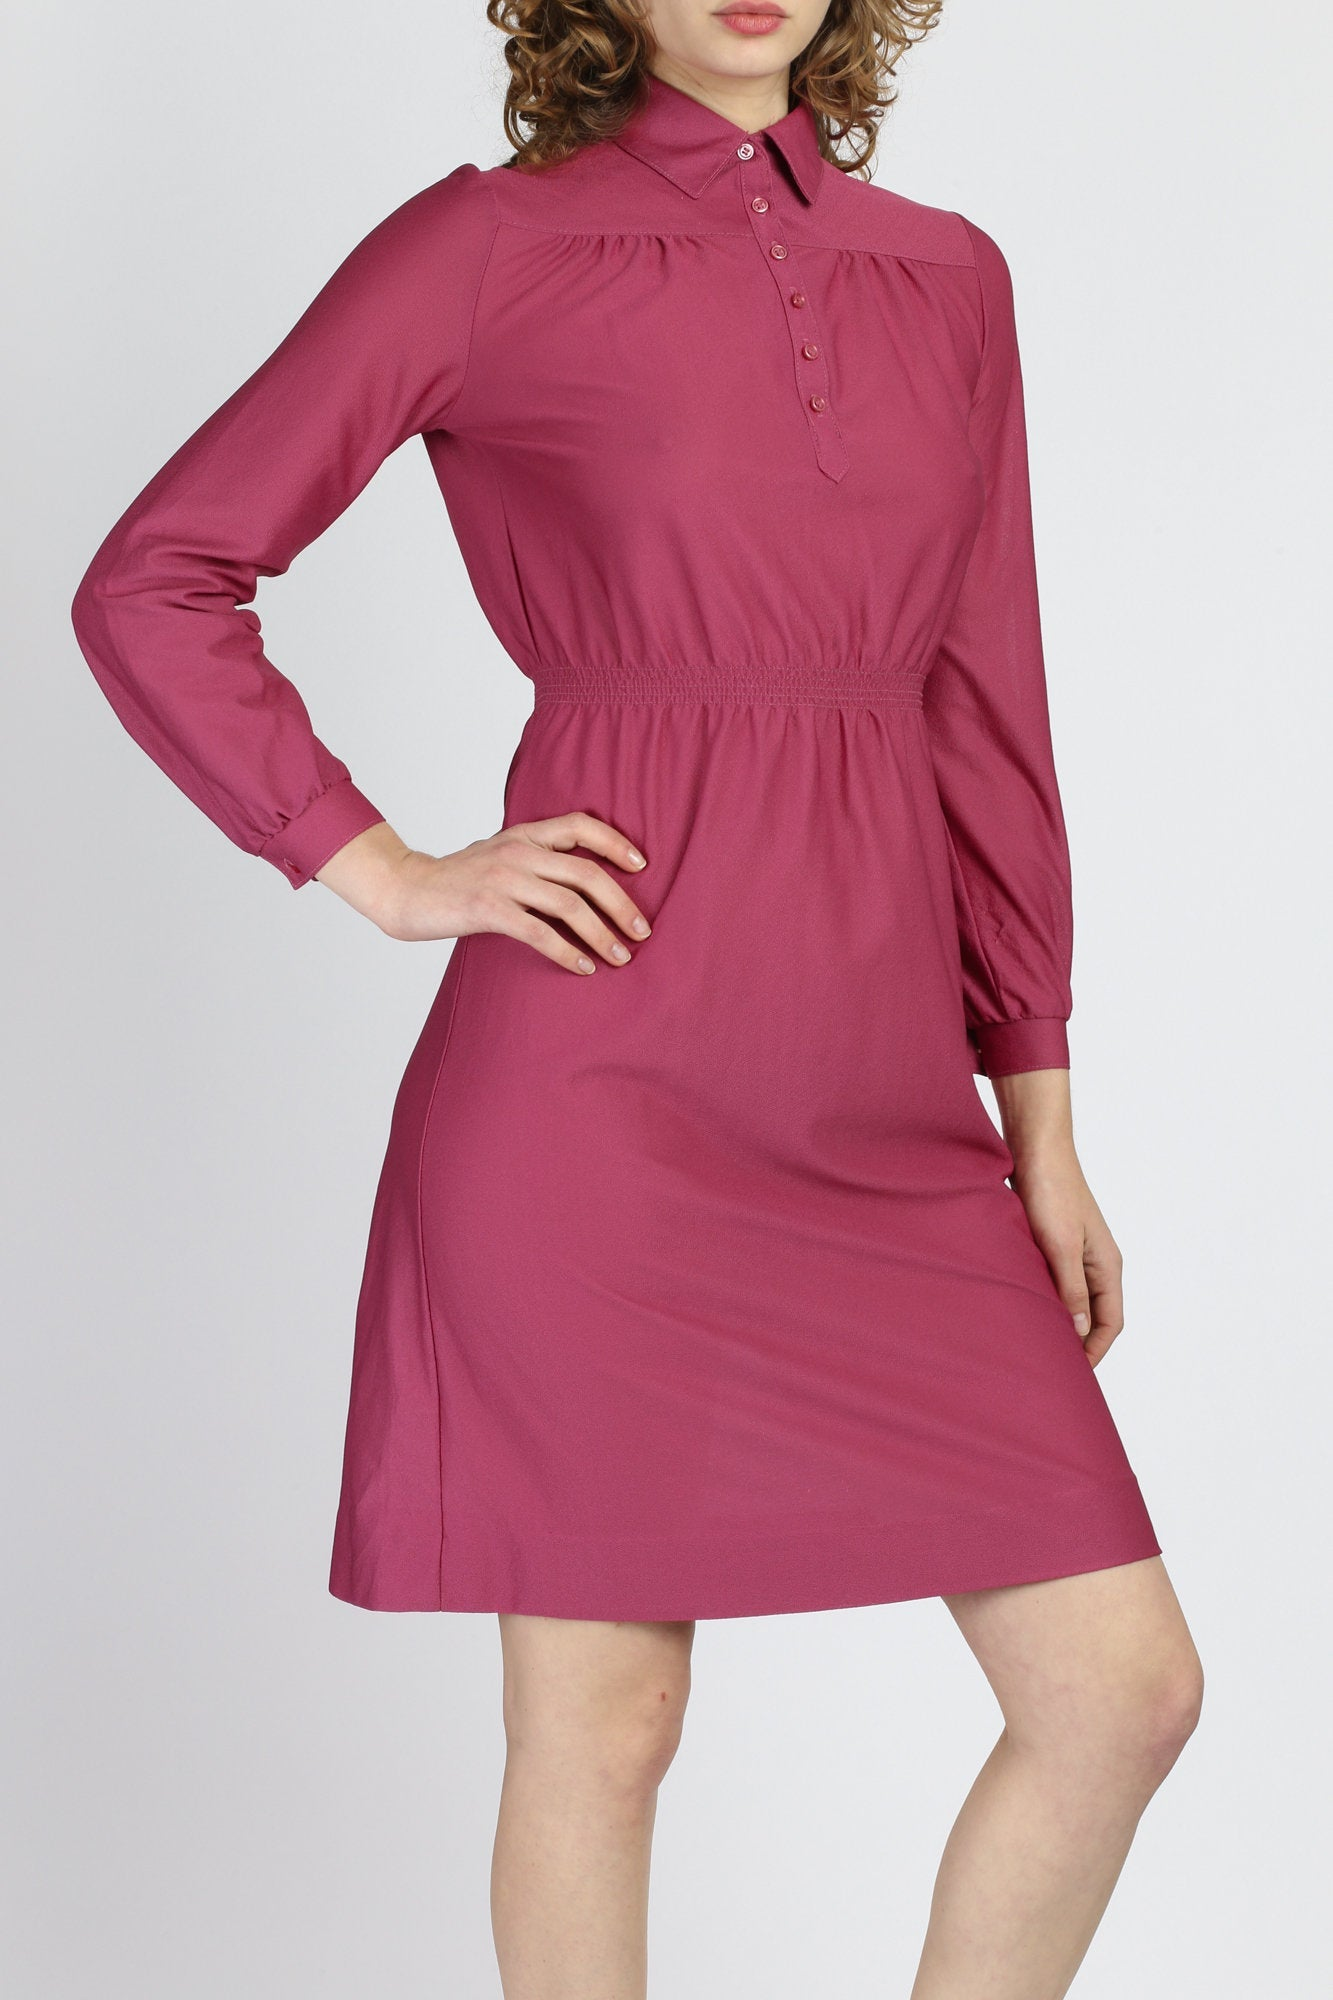 70s Magenta Long Sleeve Mini Dress - Small